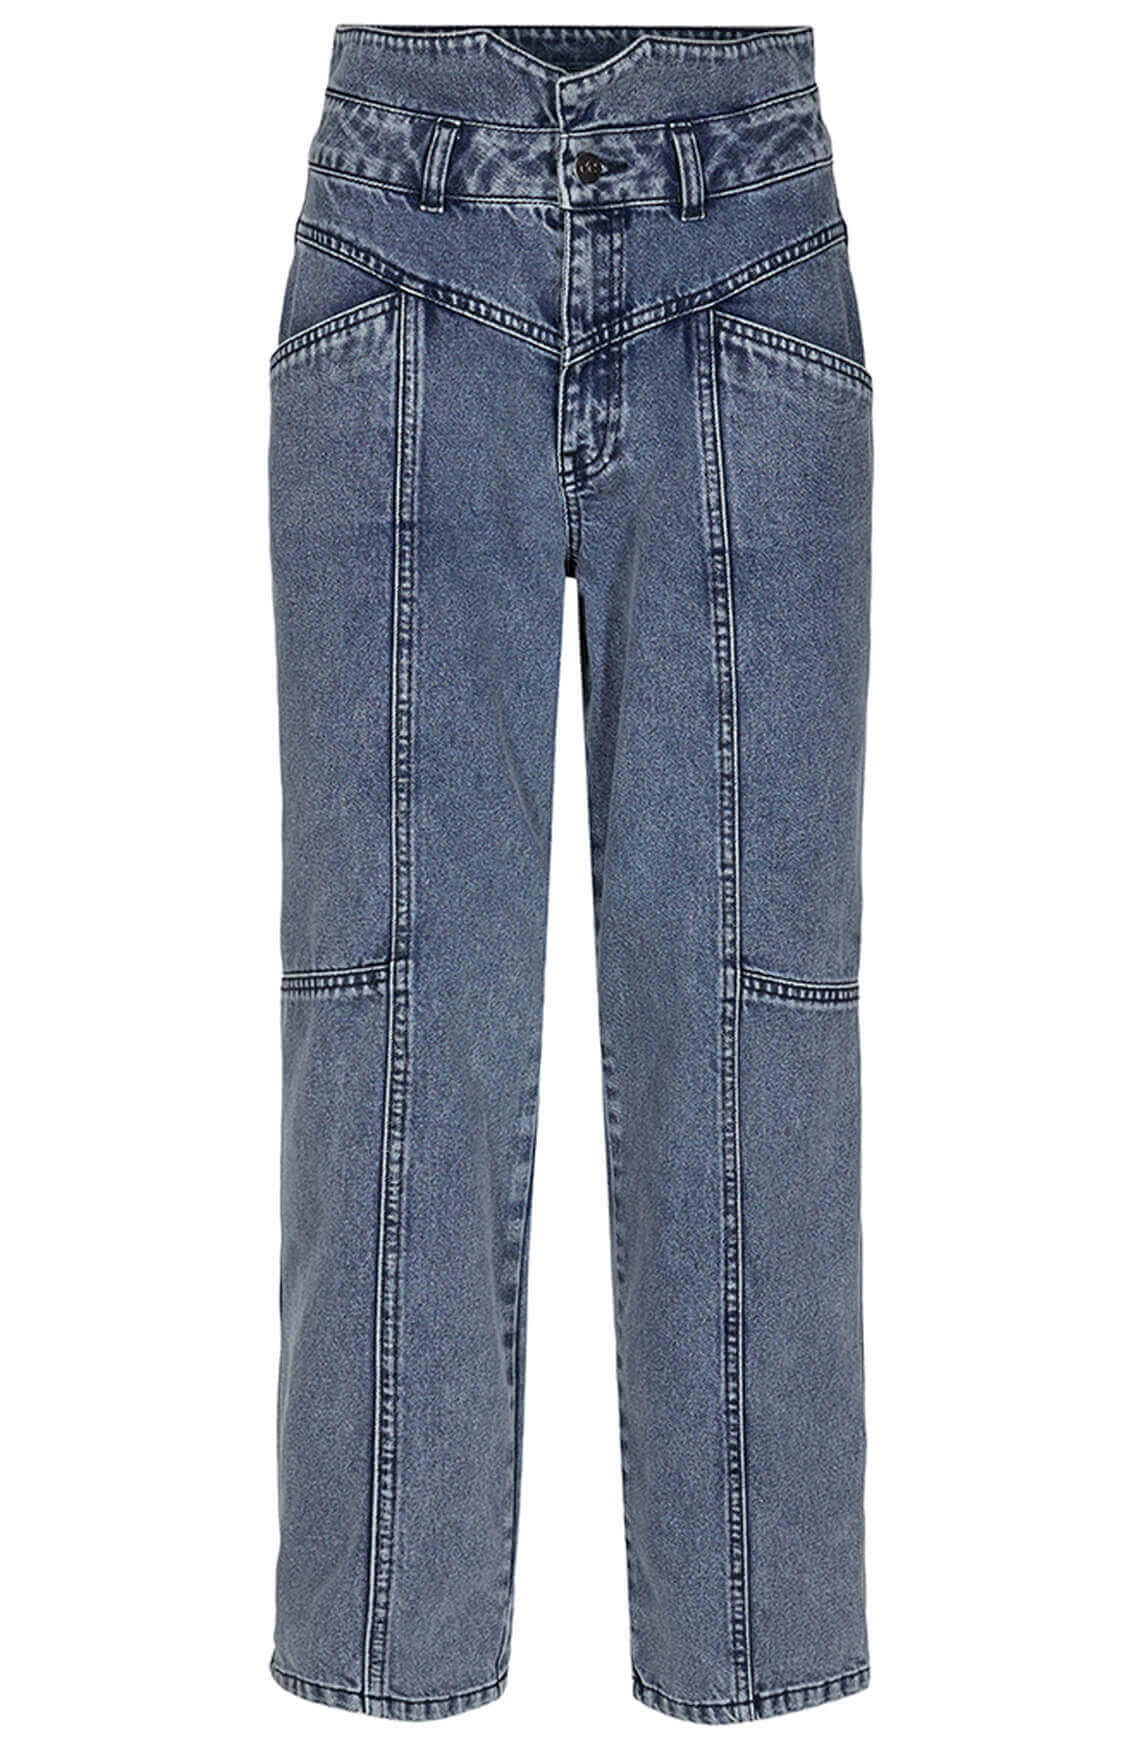 Co Couture Dames Zora high-waist jeans Blauw